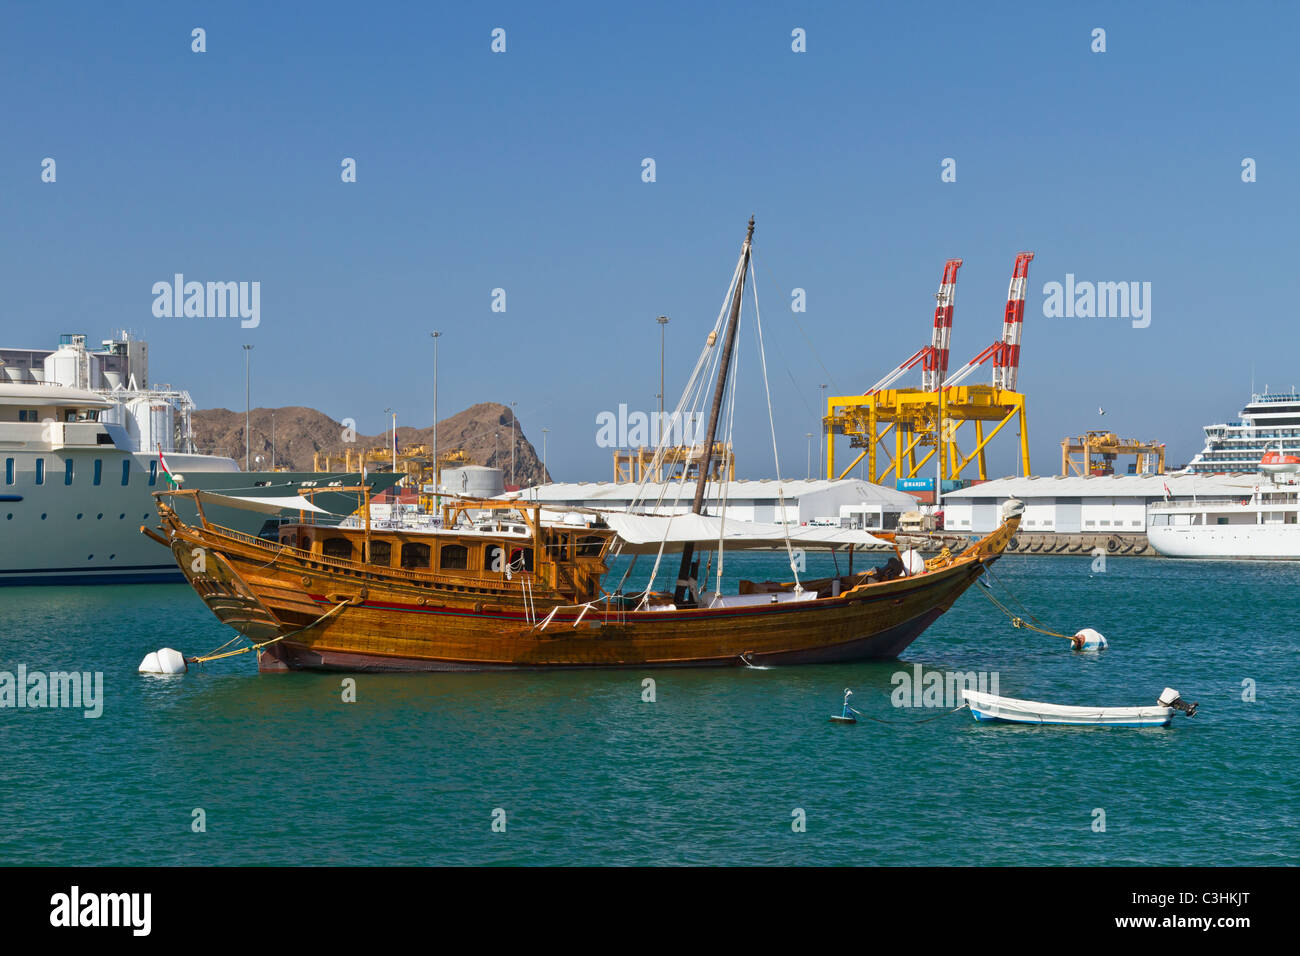 Boats anchored in the harbor of Muscat, Oman. - Stock Image